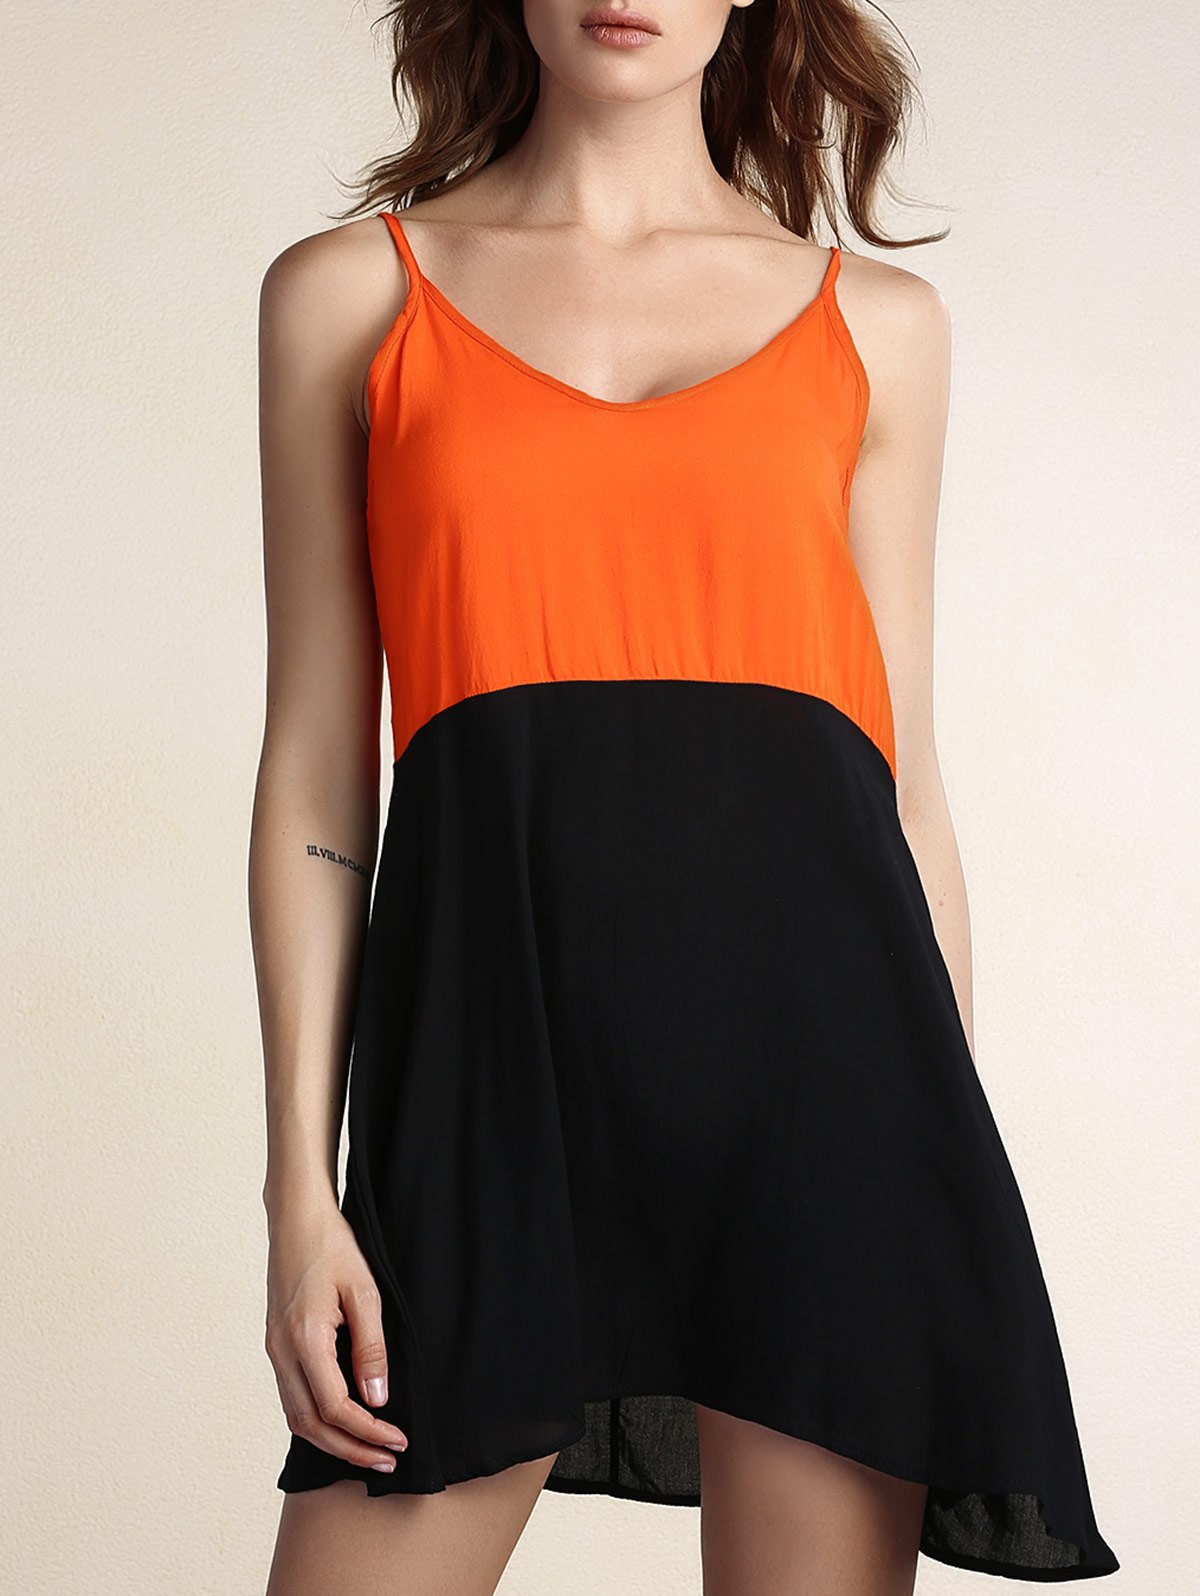 Spaghetti Strap Hit Color Spliced Backless Women's Dress